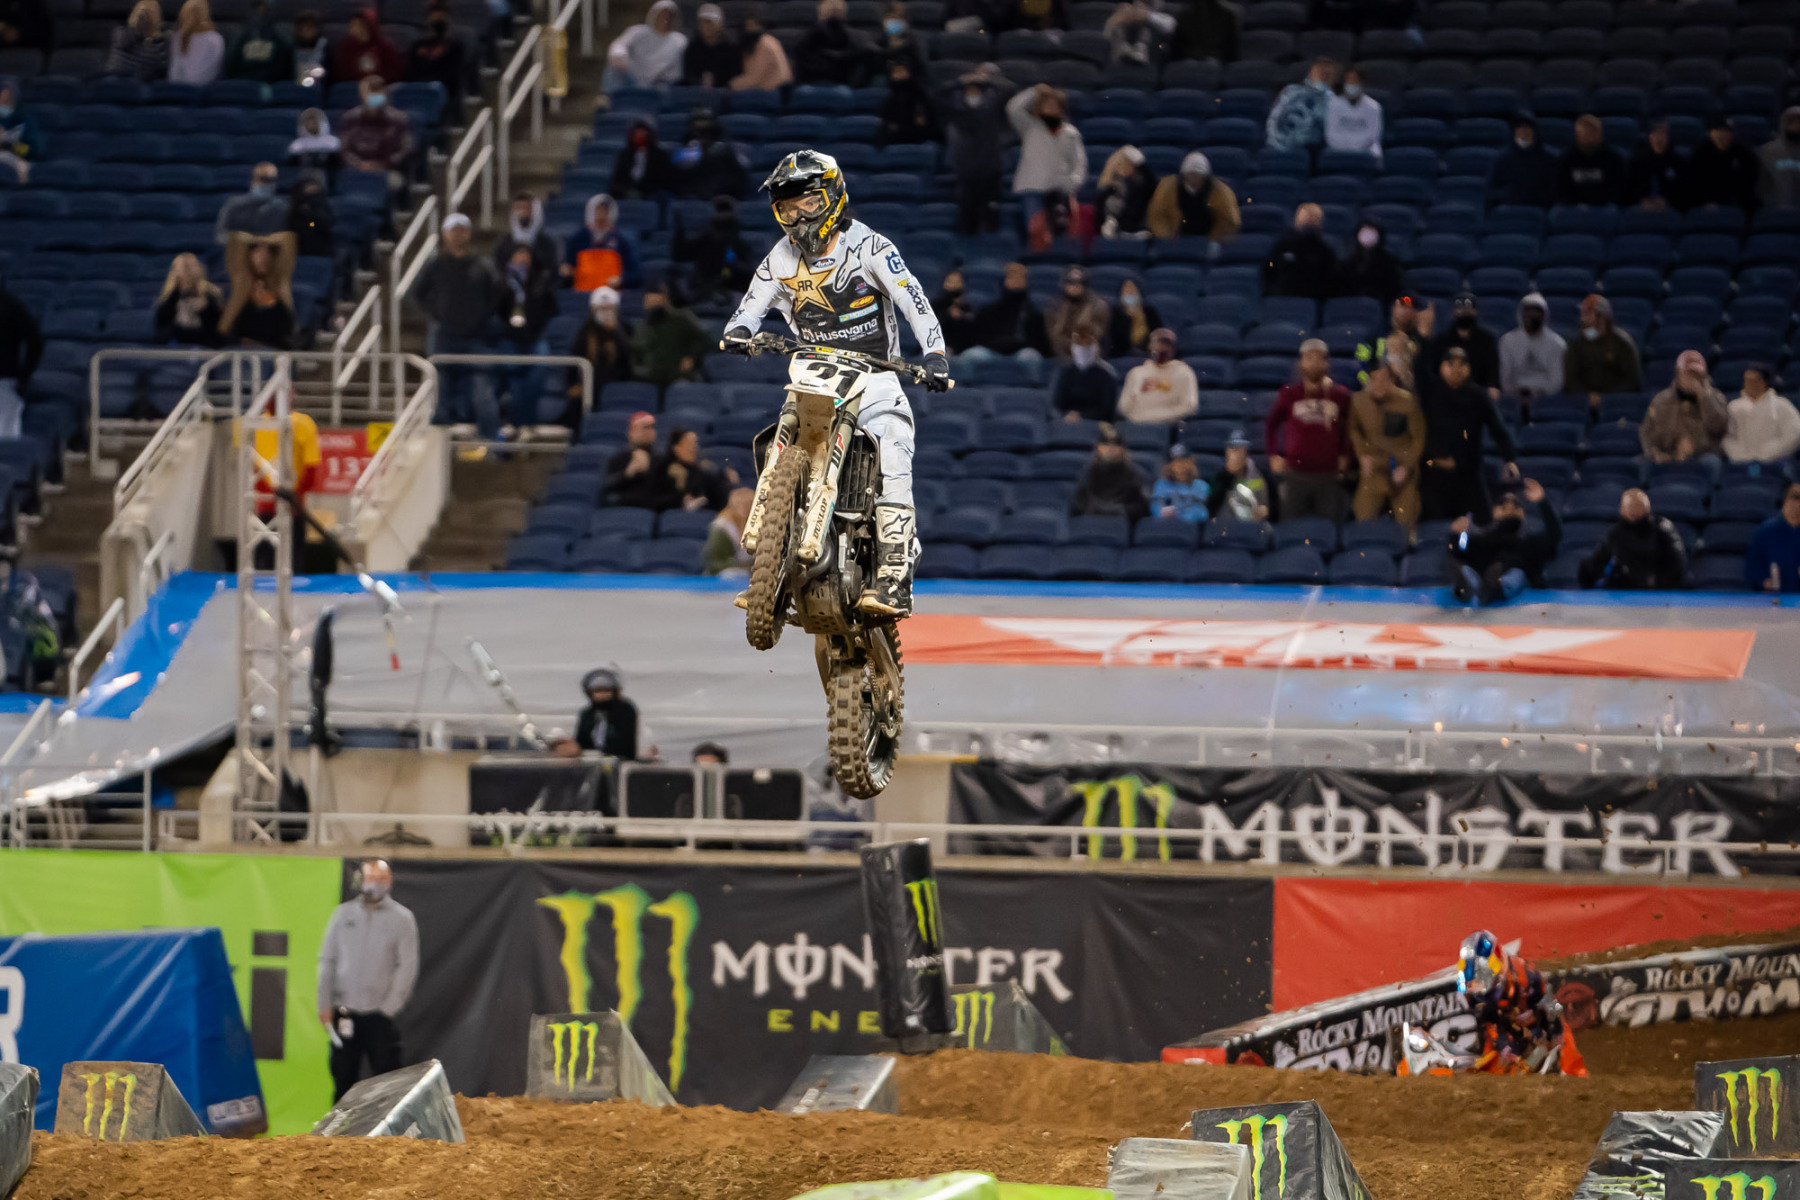 2021-ORLANDO-TWO-SUPERCROSS_KICKSTART_1539